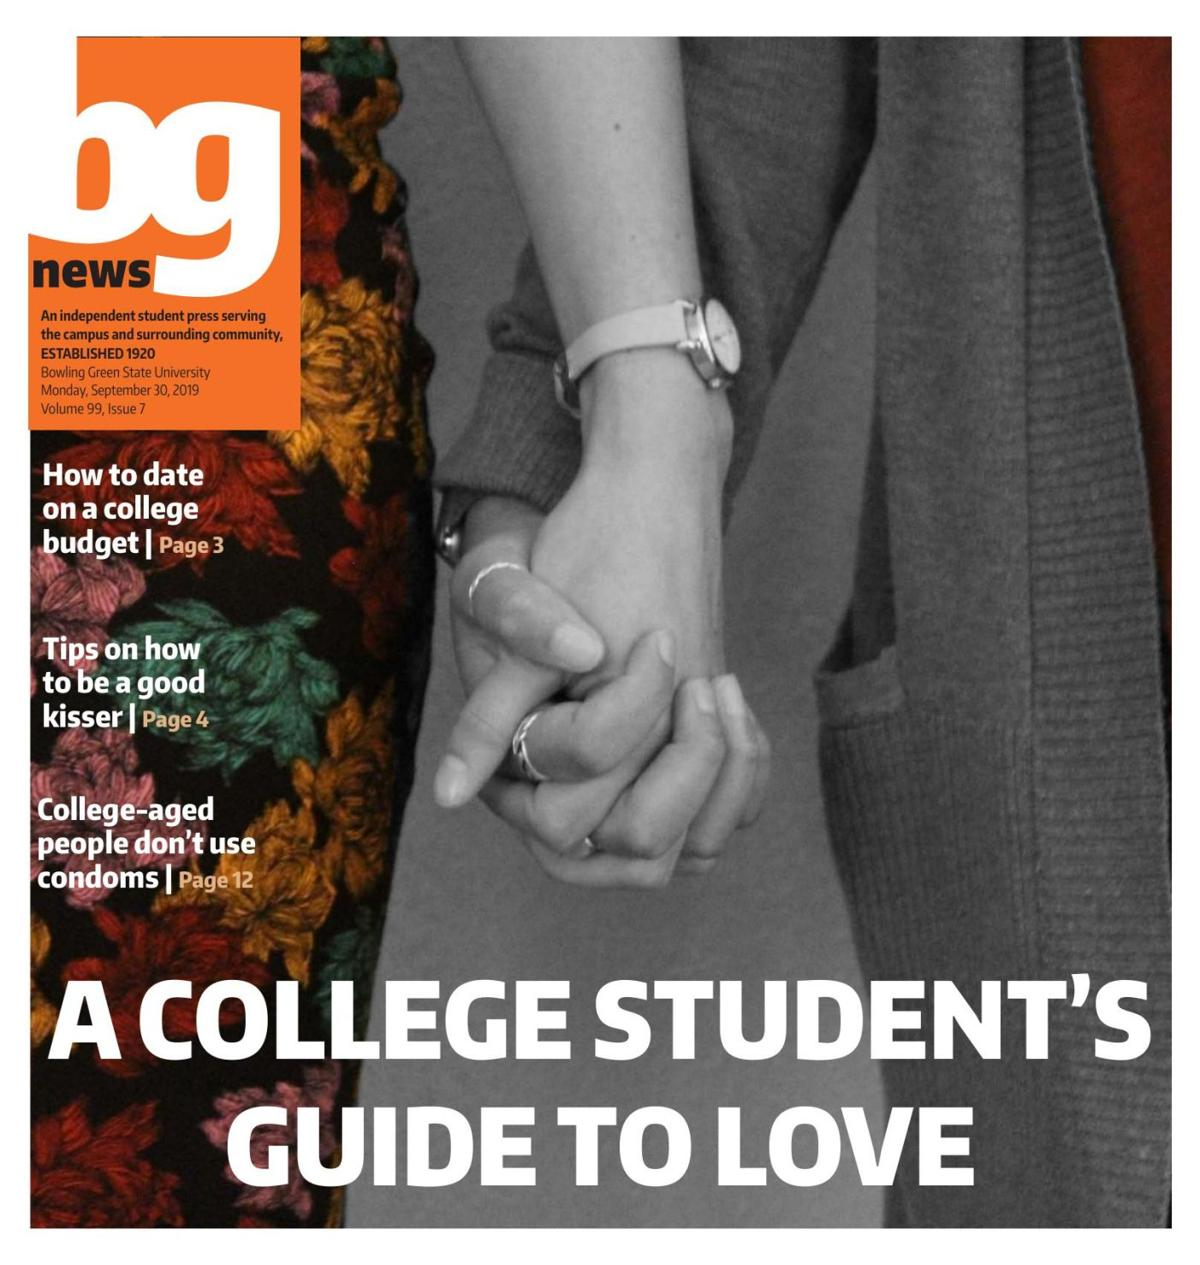 A college student's guide to love